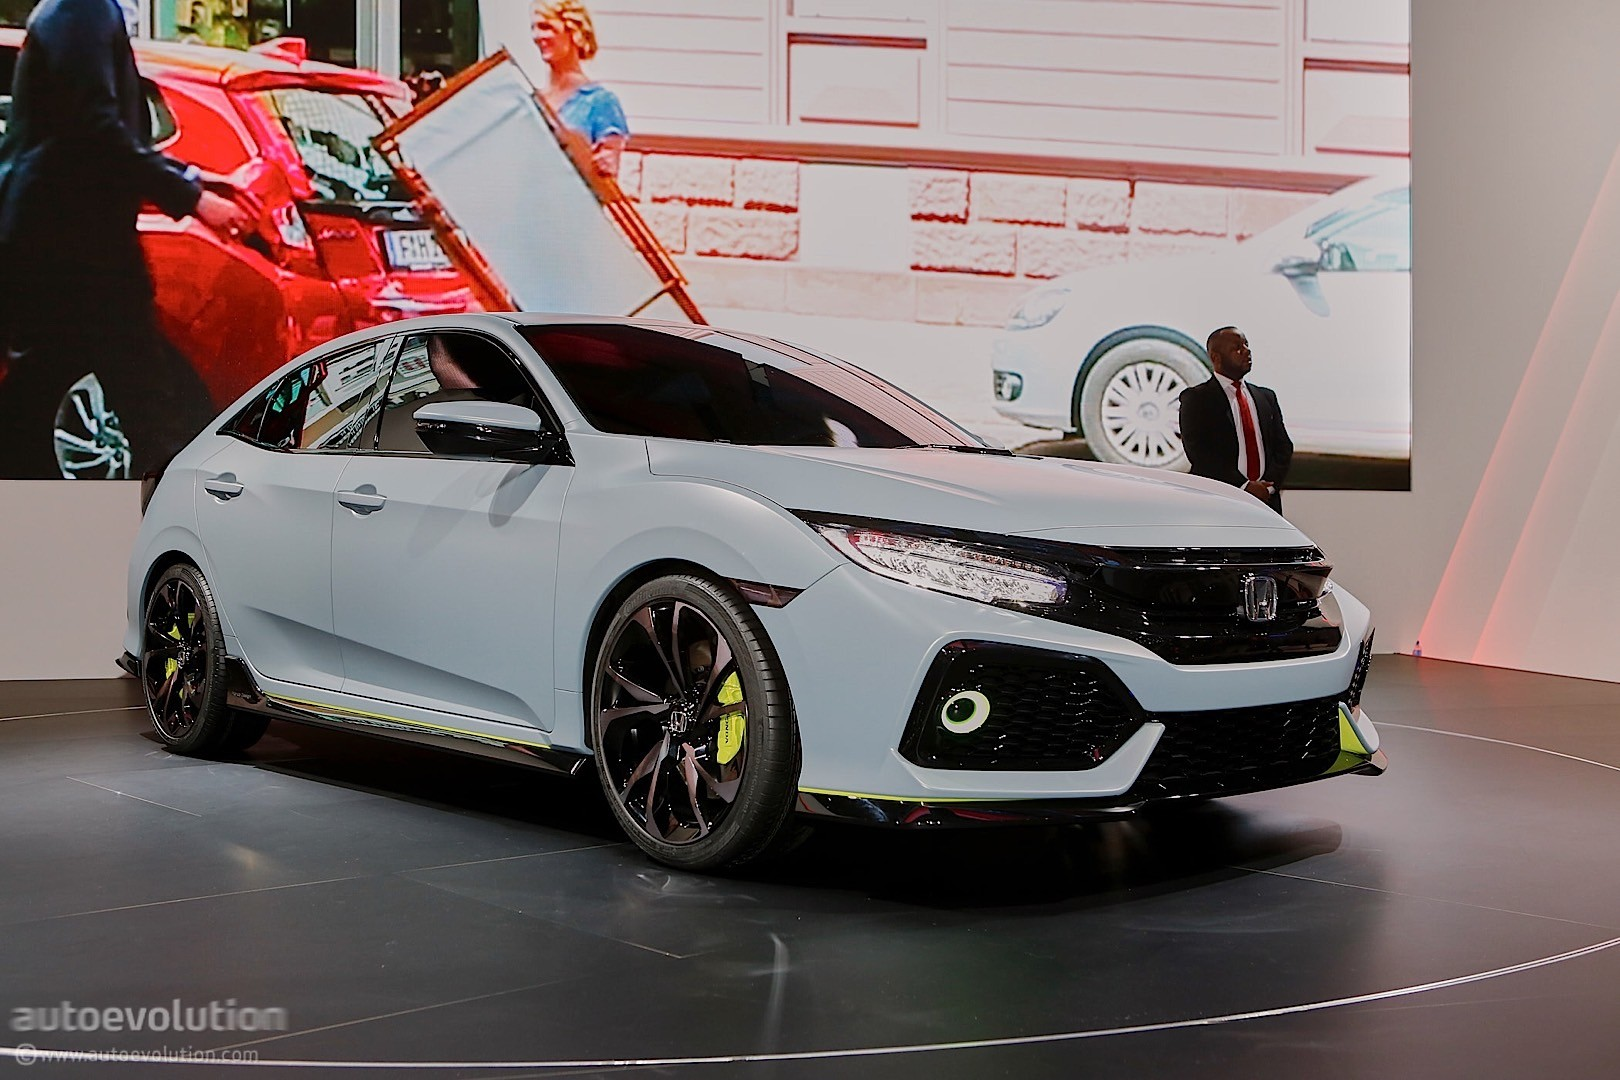 2016 Honda Civic Hatchback Prototype Live In Geneva